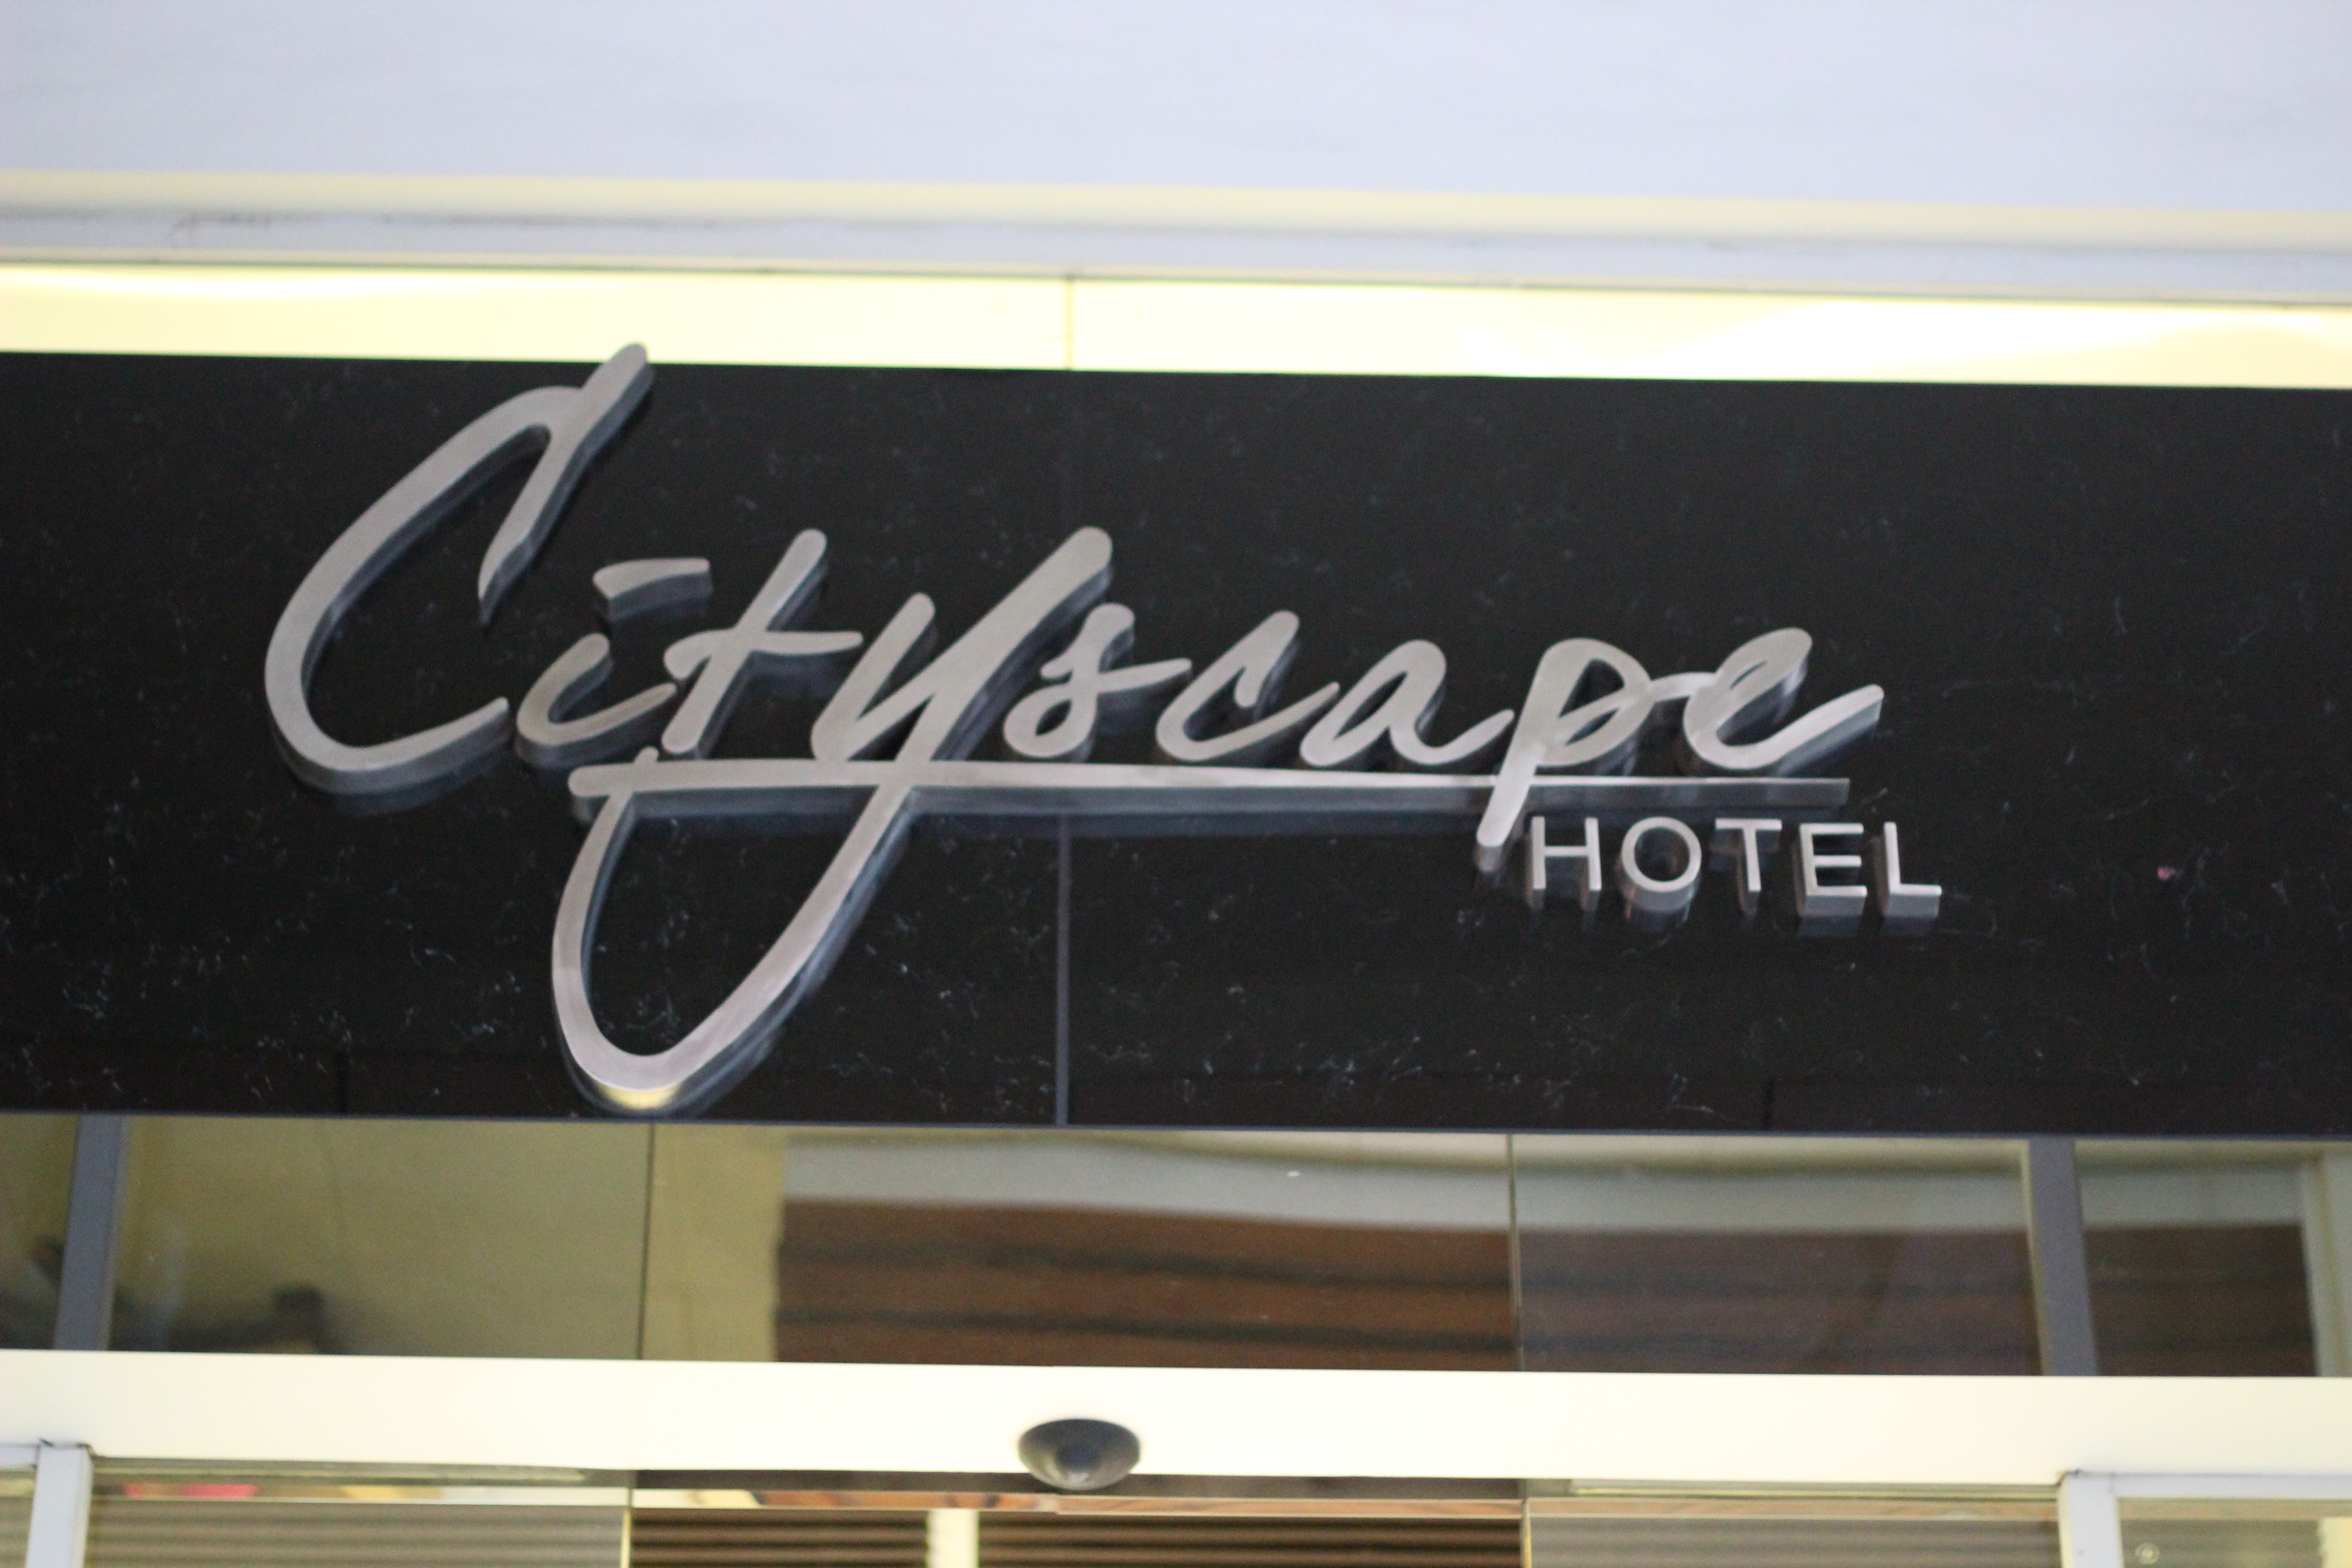 Cityscape Hotel